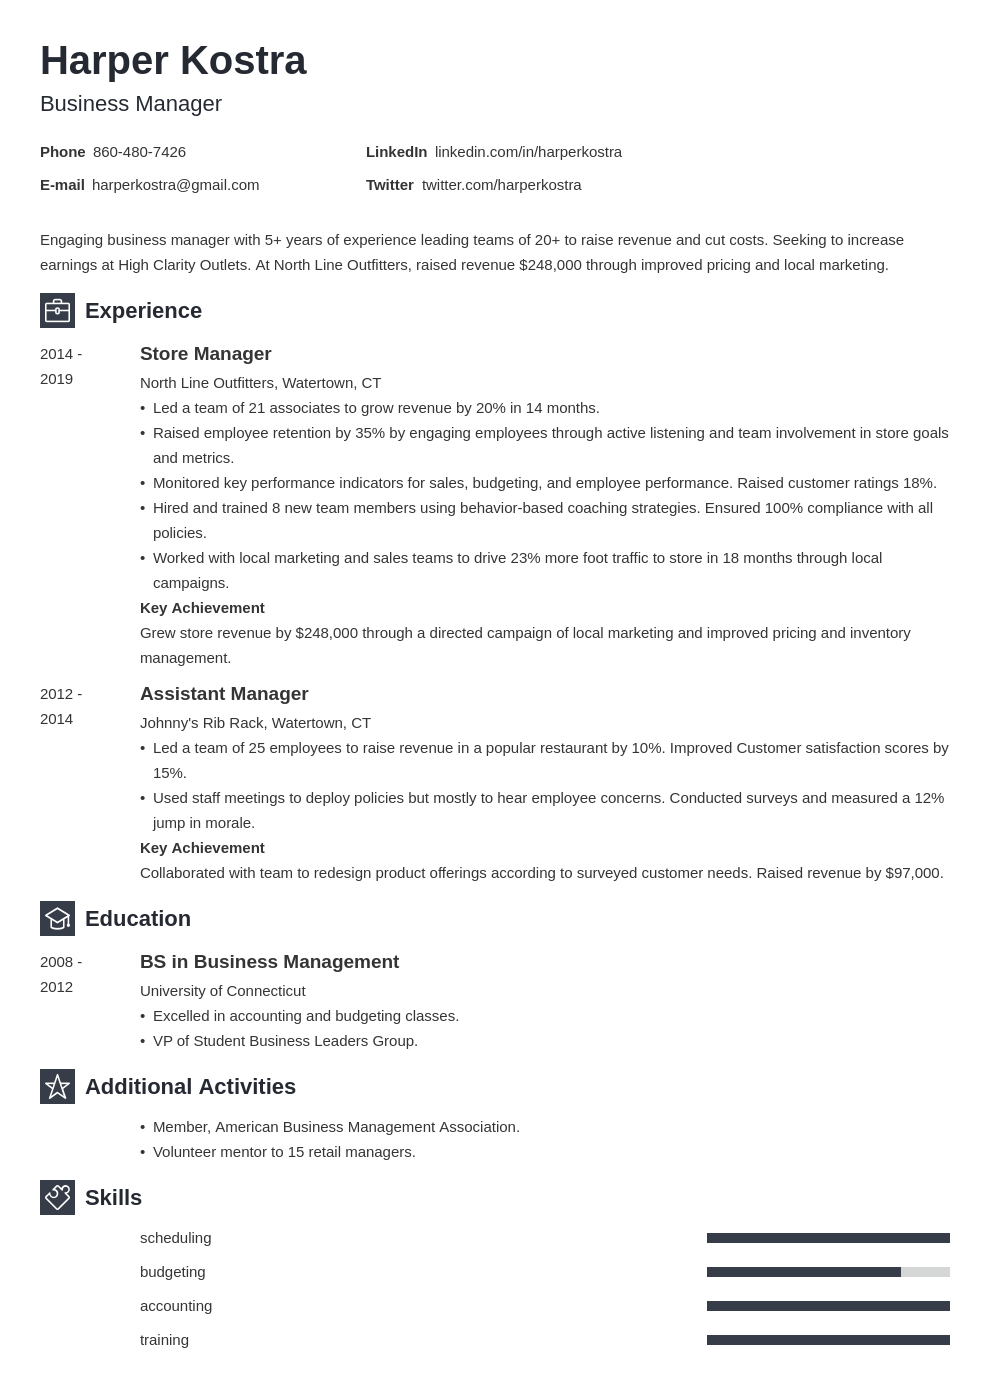 business manager template newcast uk